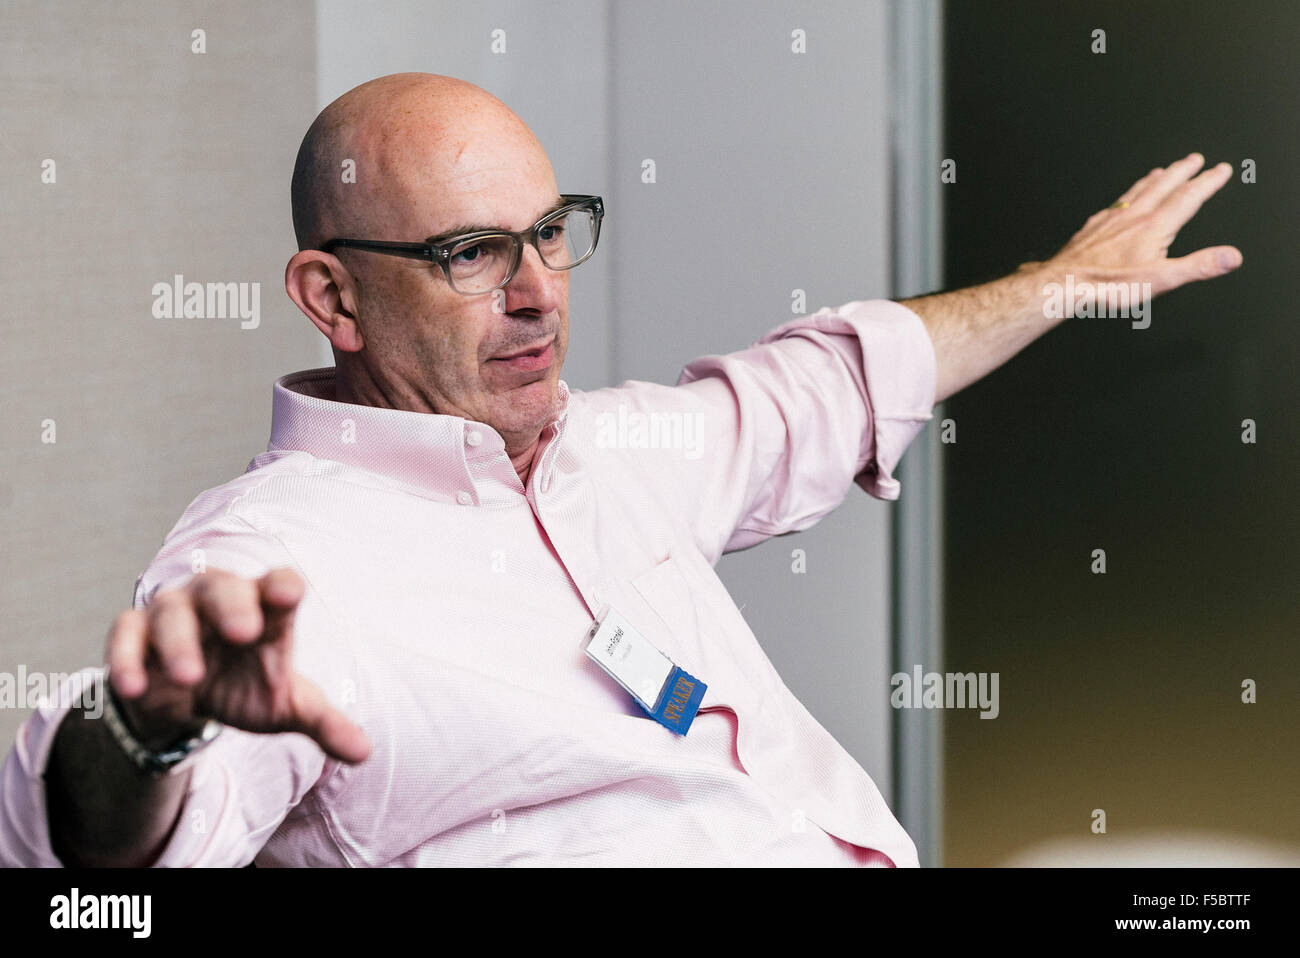 British Early stage venture capitalist John Frankel - Stock Image